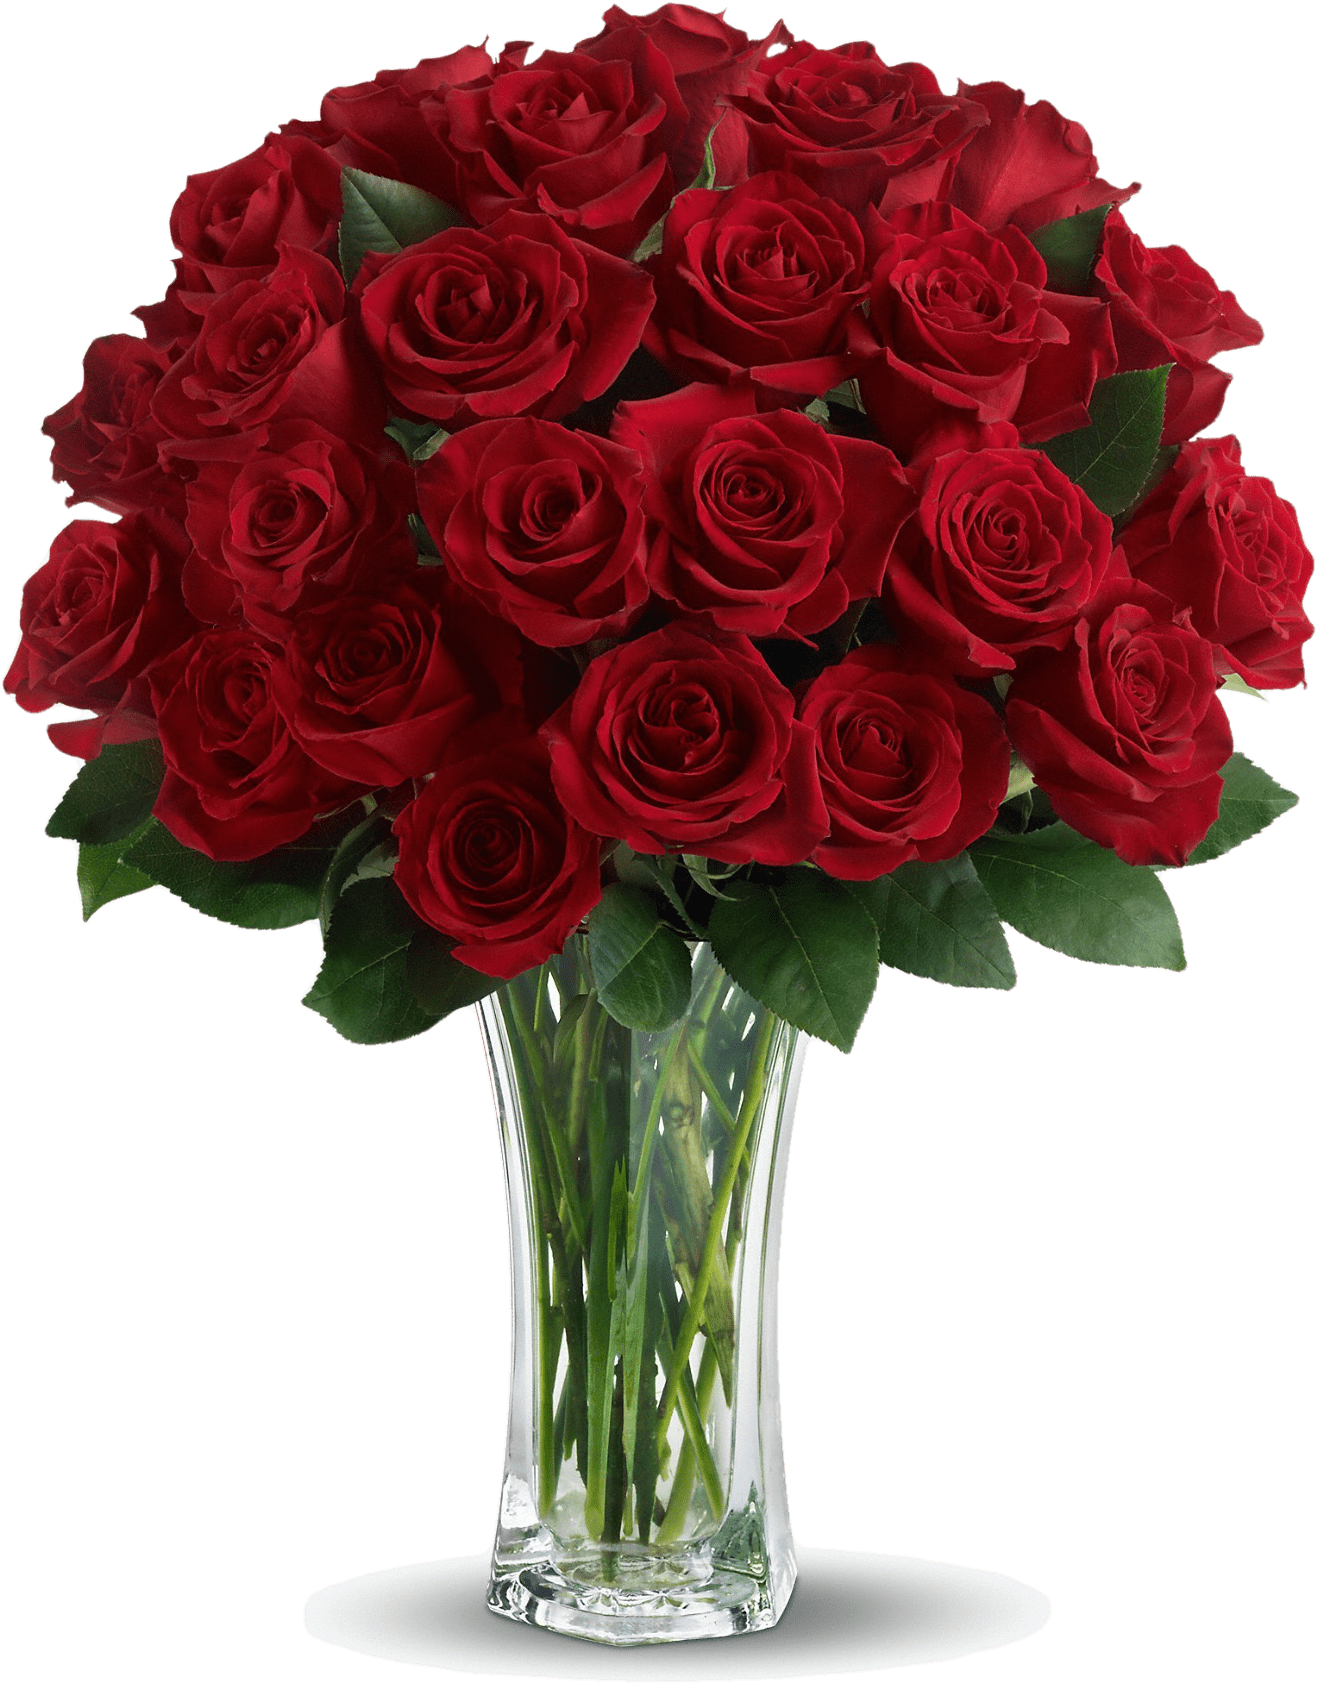 Transparent valentine roses clipart - Rose Png Images For Your Graphic Design, Presentations - Valentines Day Gifts Flowers